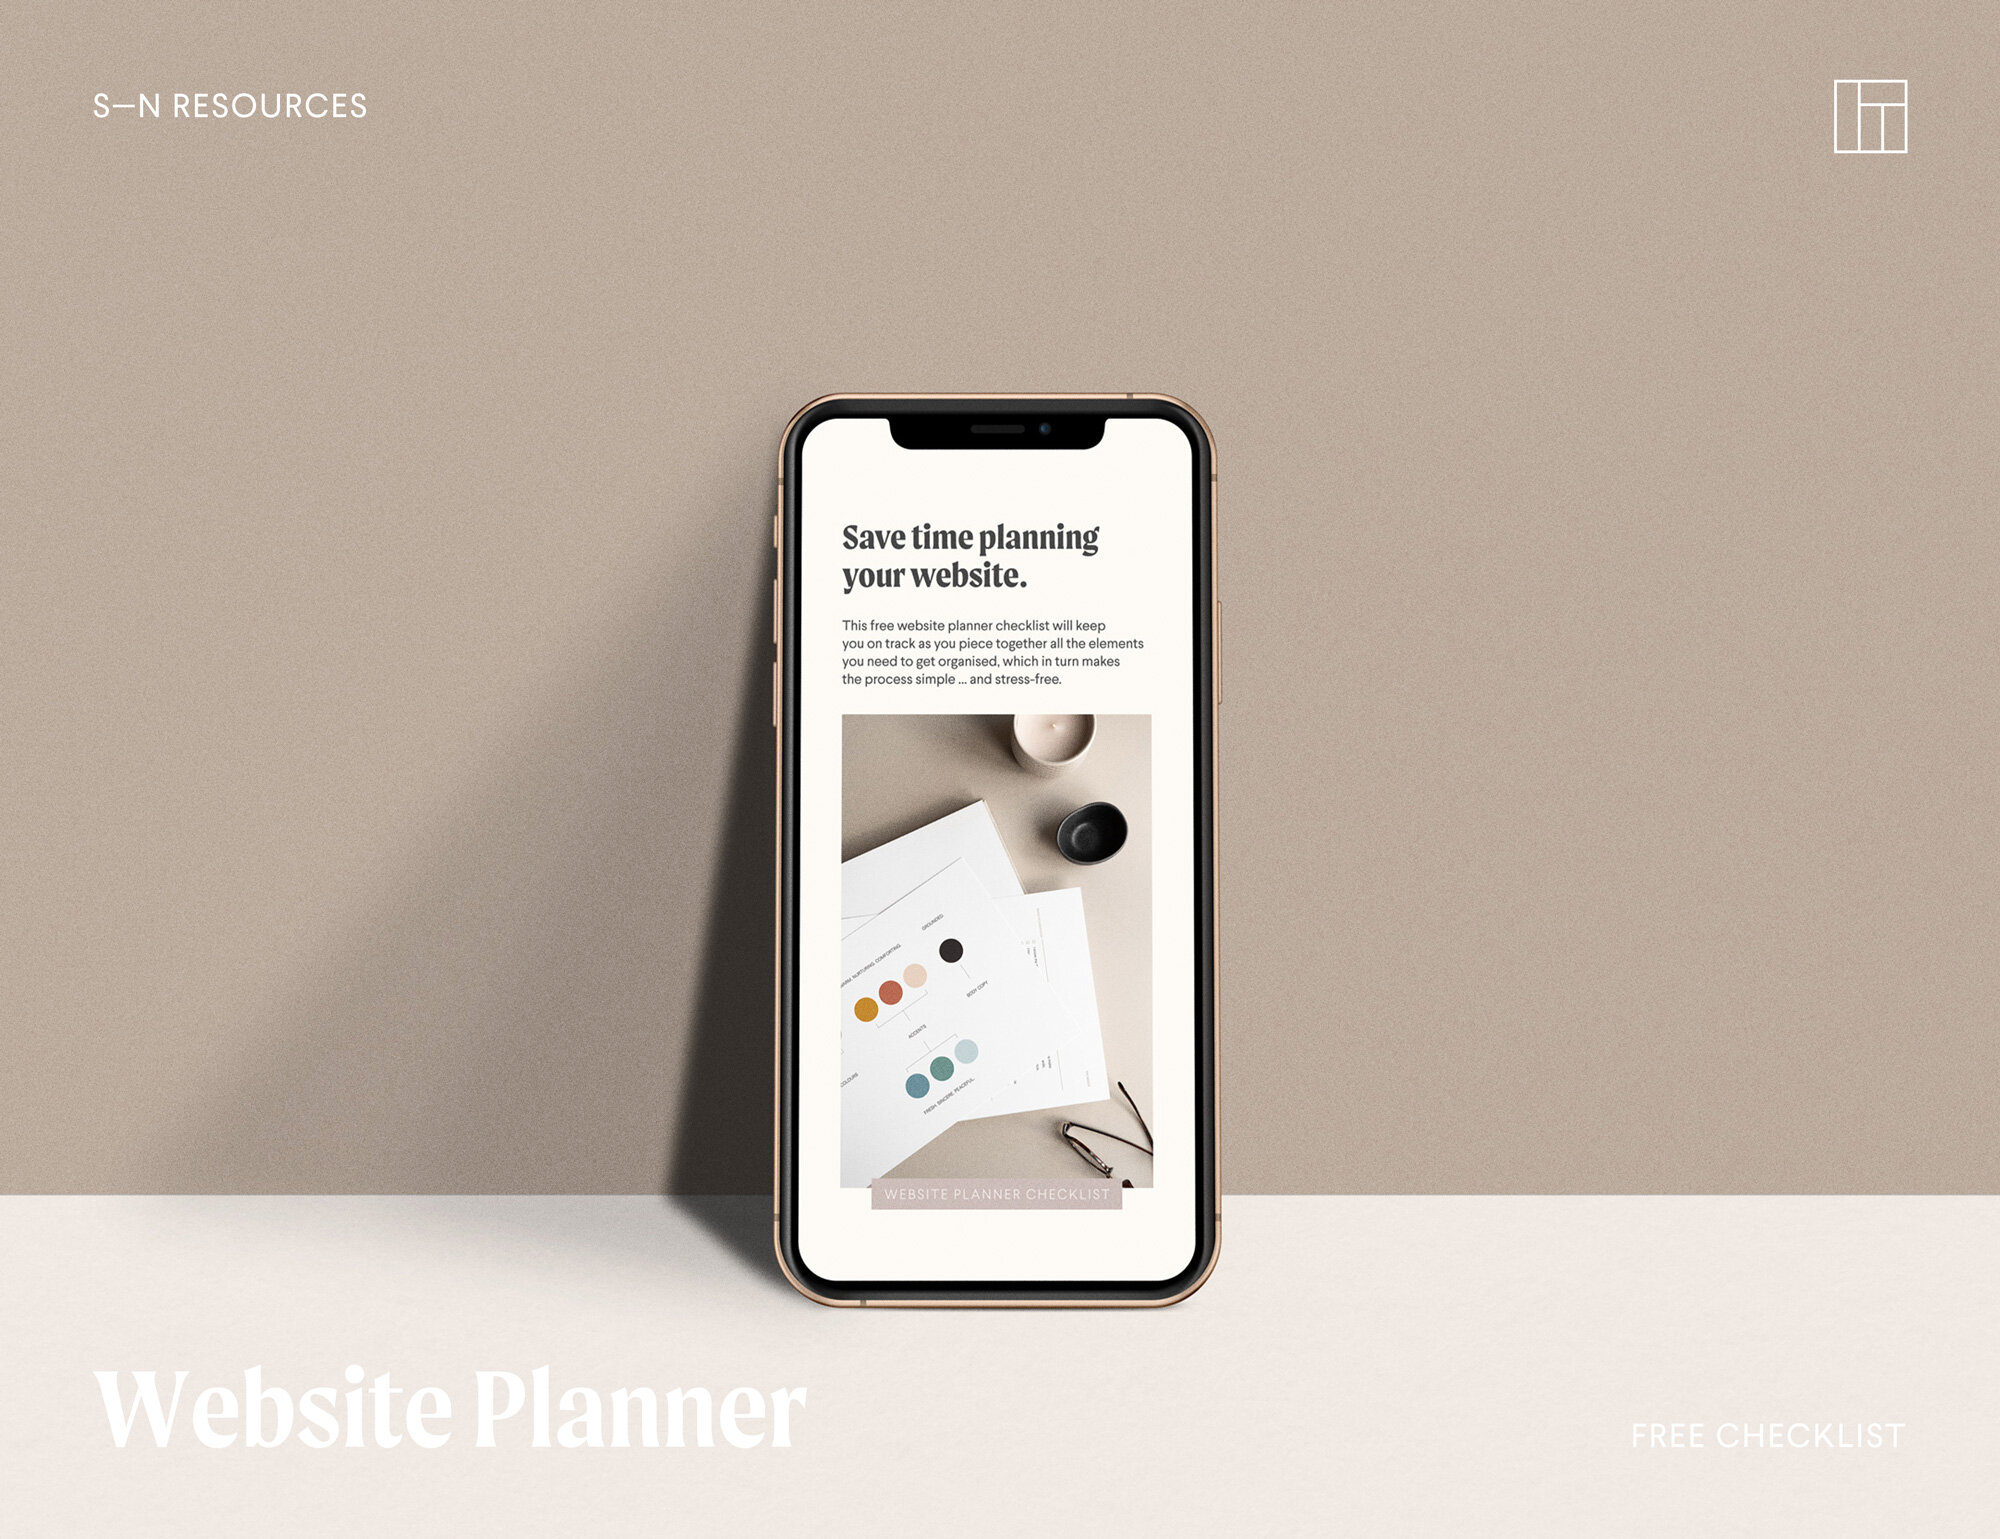 - This free Website Planner checklist will keep you on track as you piece together all the elements you need to get organised, which in turn makes the process simple … and stress-free.